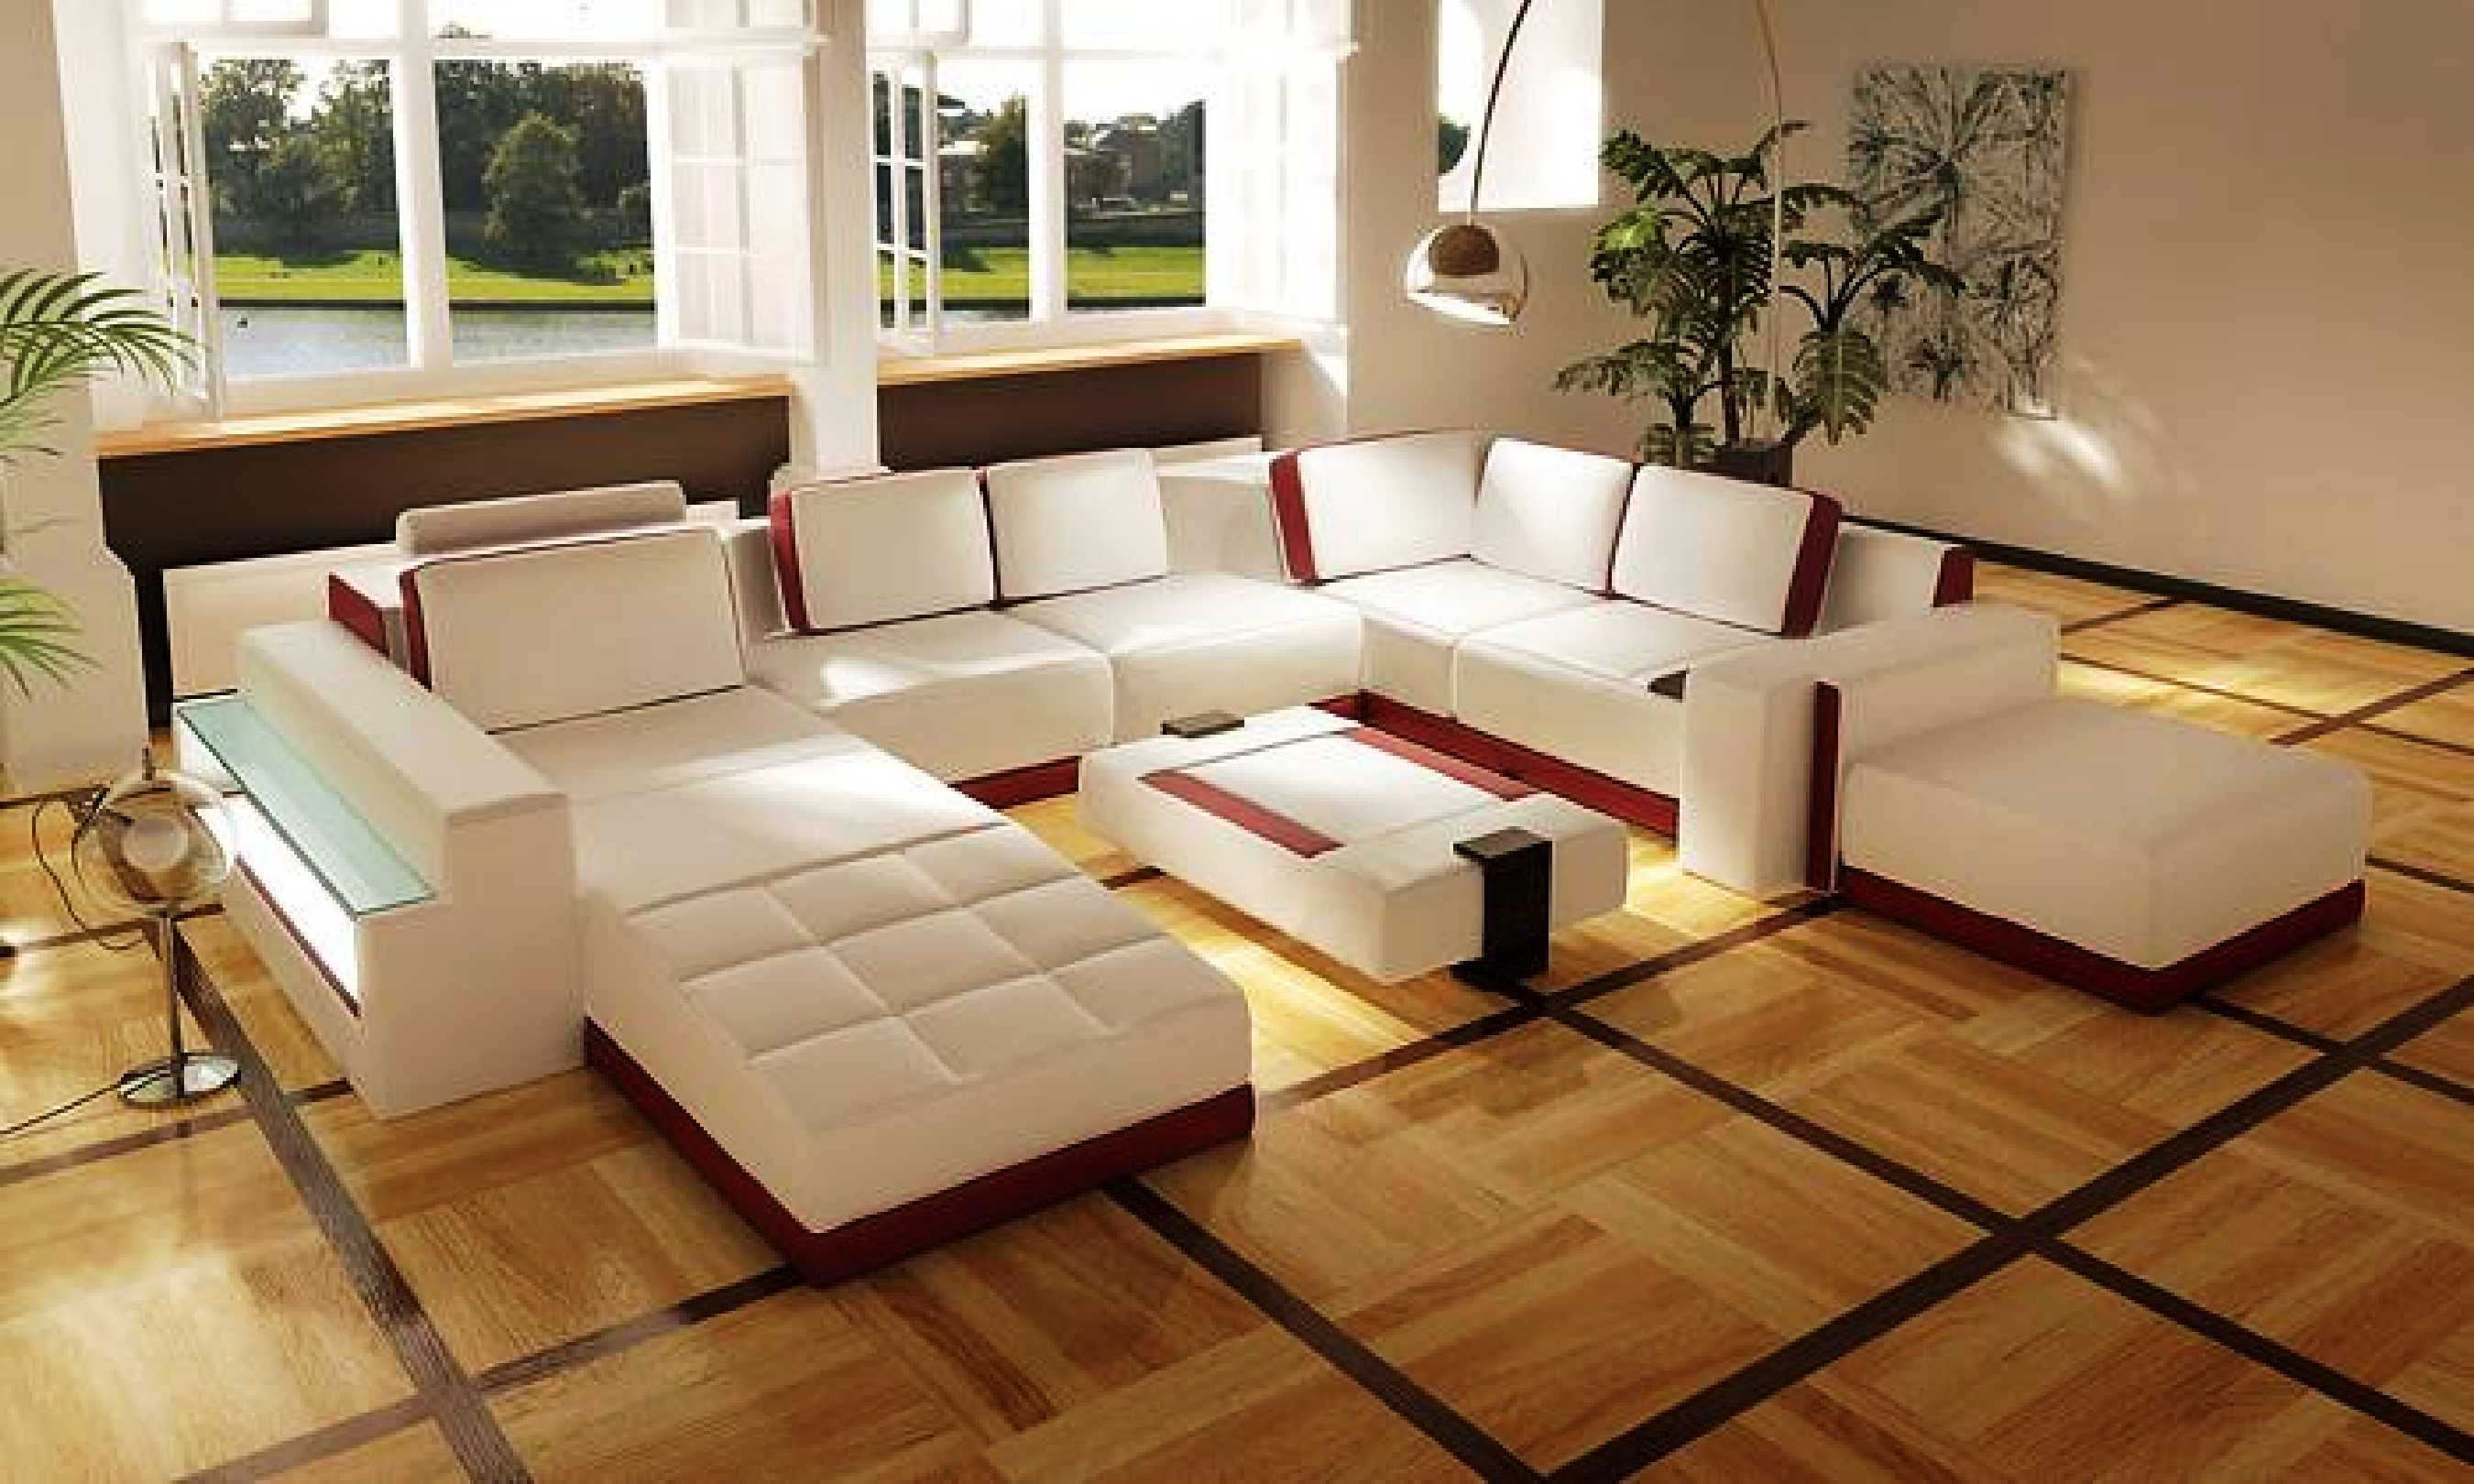 Beautiful Tiles For Living Room Ideas Ceramic Floor Design With